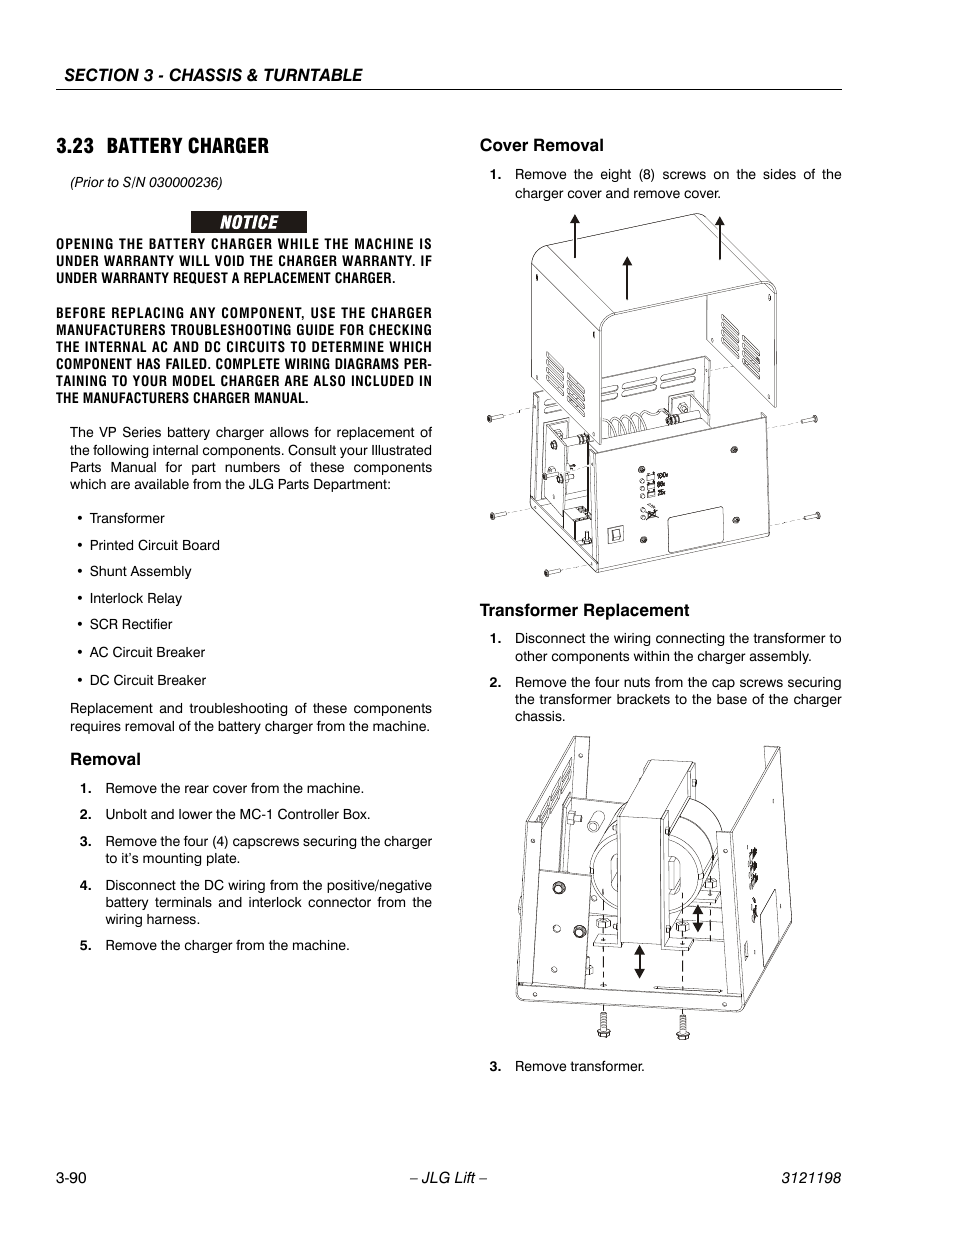 23 battery charger, removal, cover removal | jlg t350 service manual user  manual | page 126 / 230